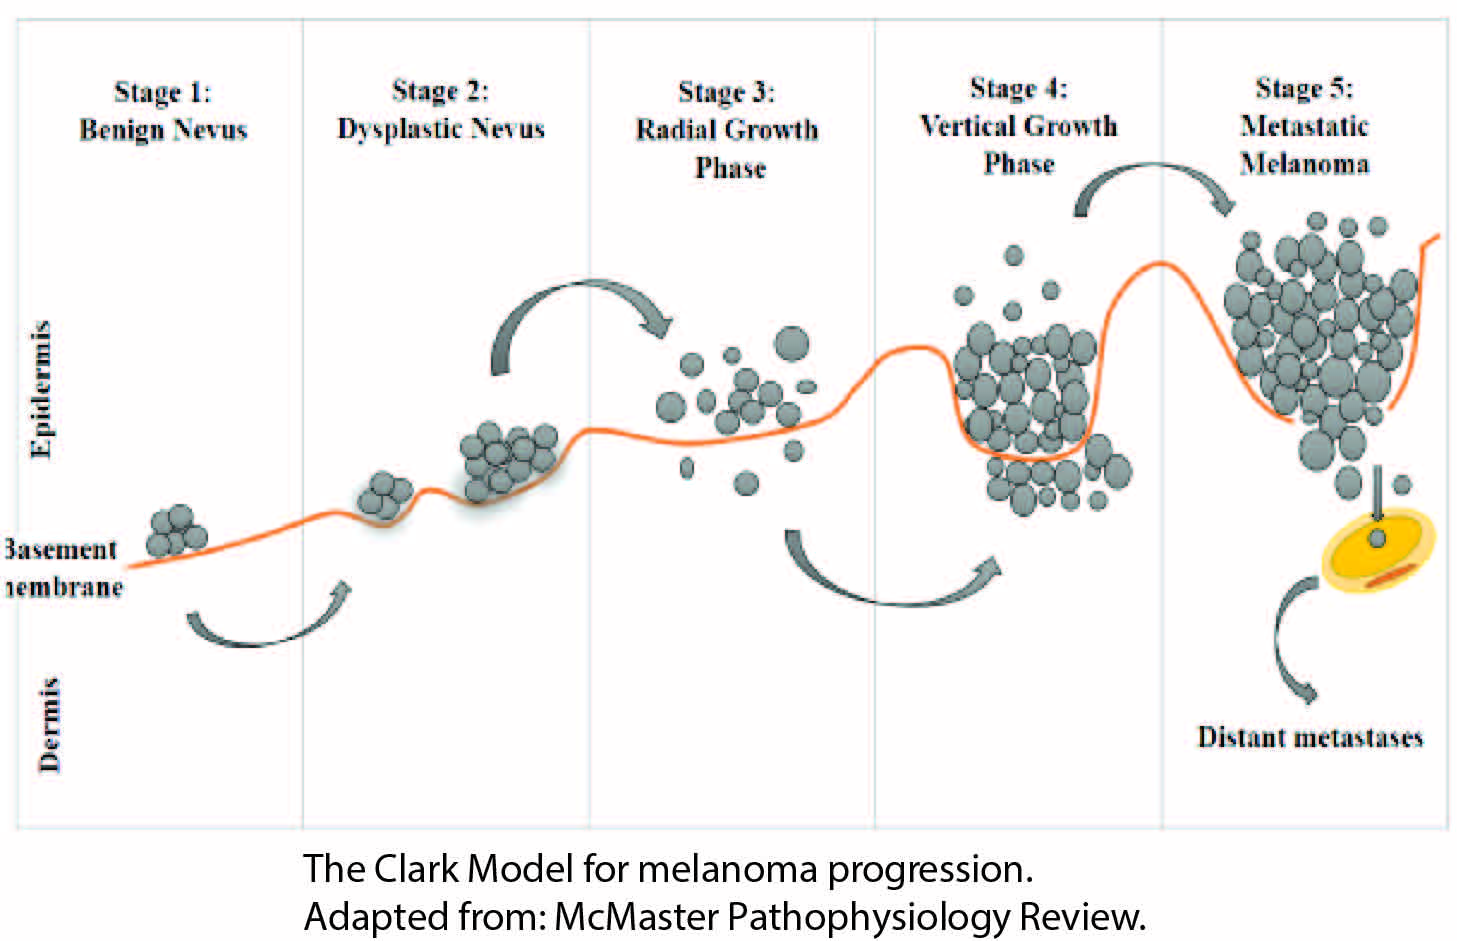 When skin cells go rogue: The onset of melanoma | The Petri Dish